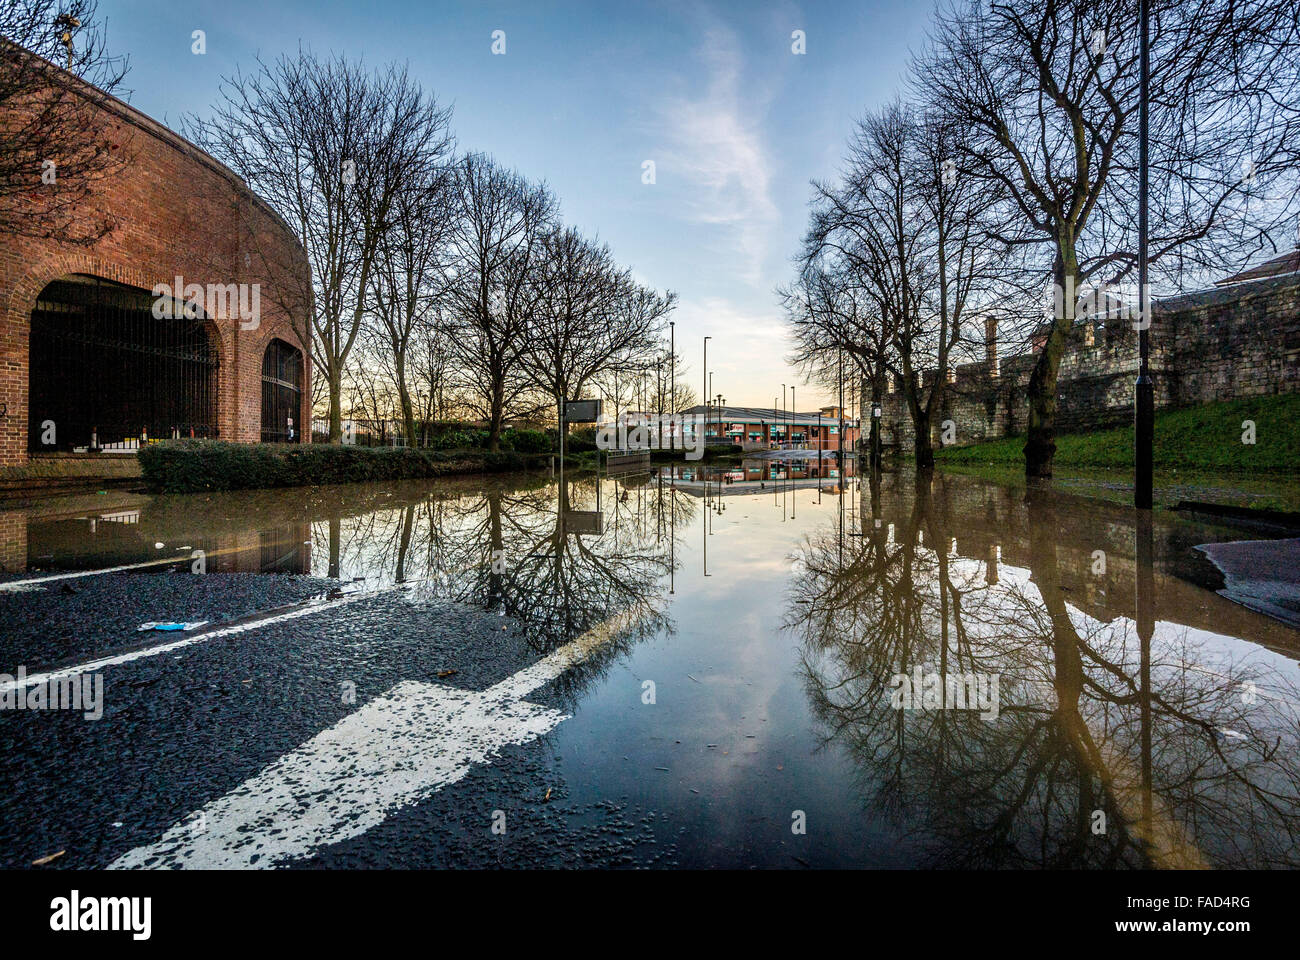 York, UK. 27th December, 2015. Widespread disruption continues in York due to flooding of the River Ouse and River - Stock Image